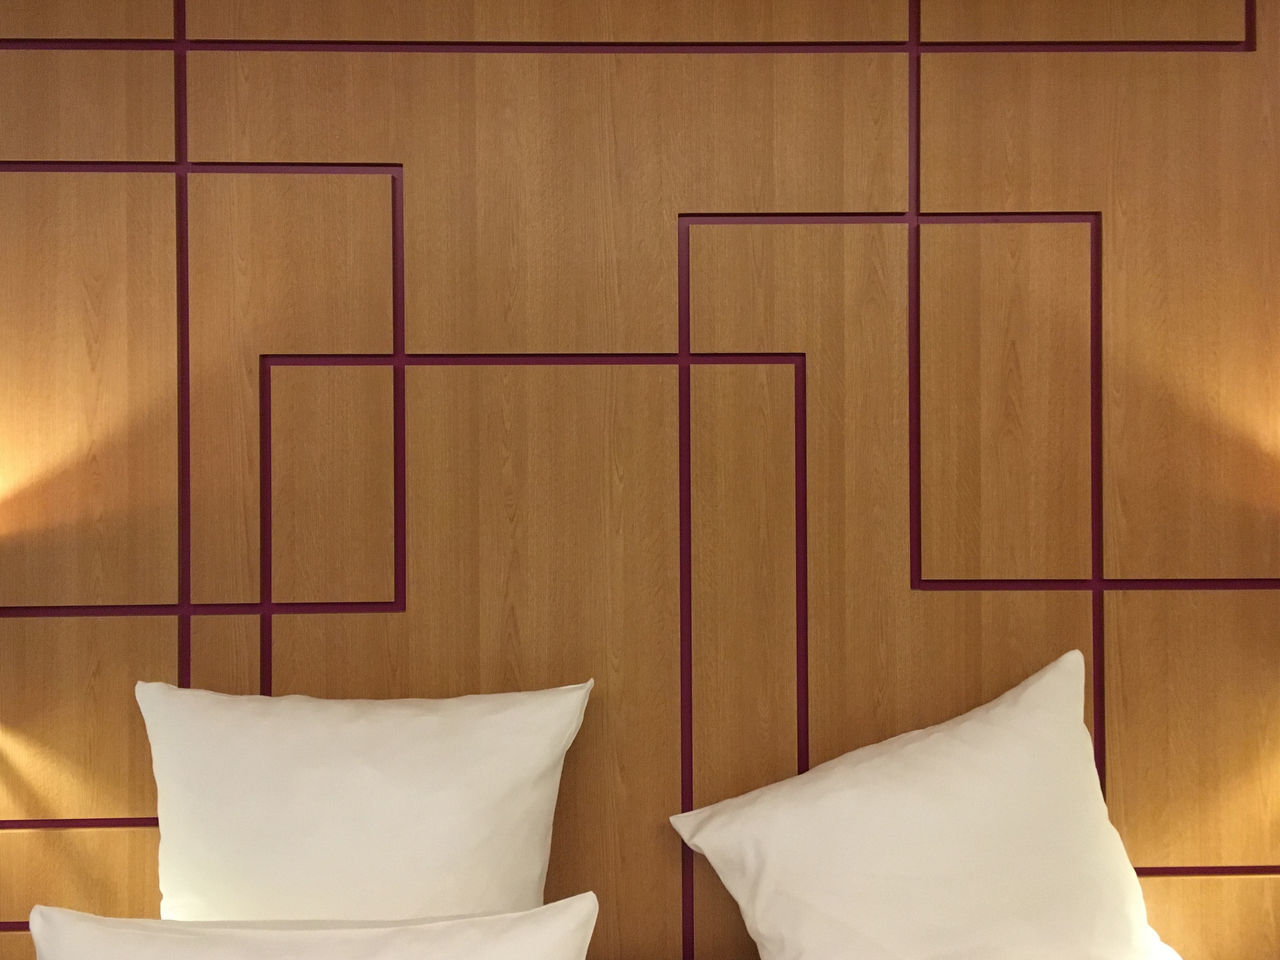 Architecture Bed Day Hotel Room Indoors  Nearly Perfect No People Pattern Wood Paneling